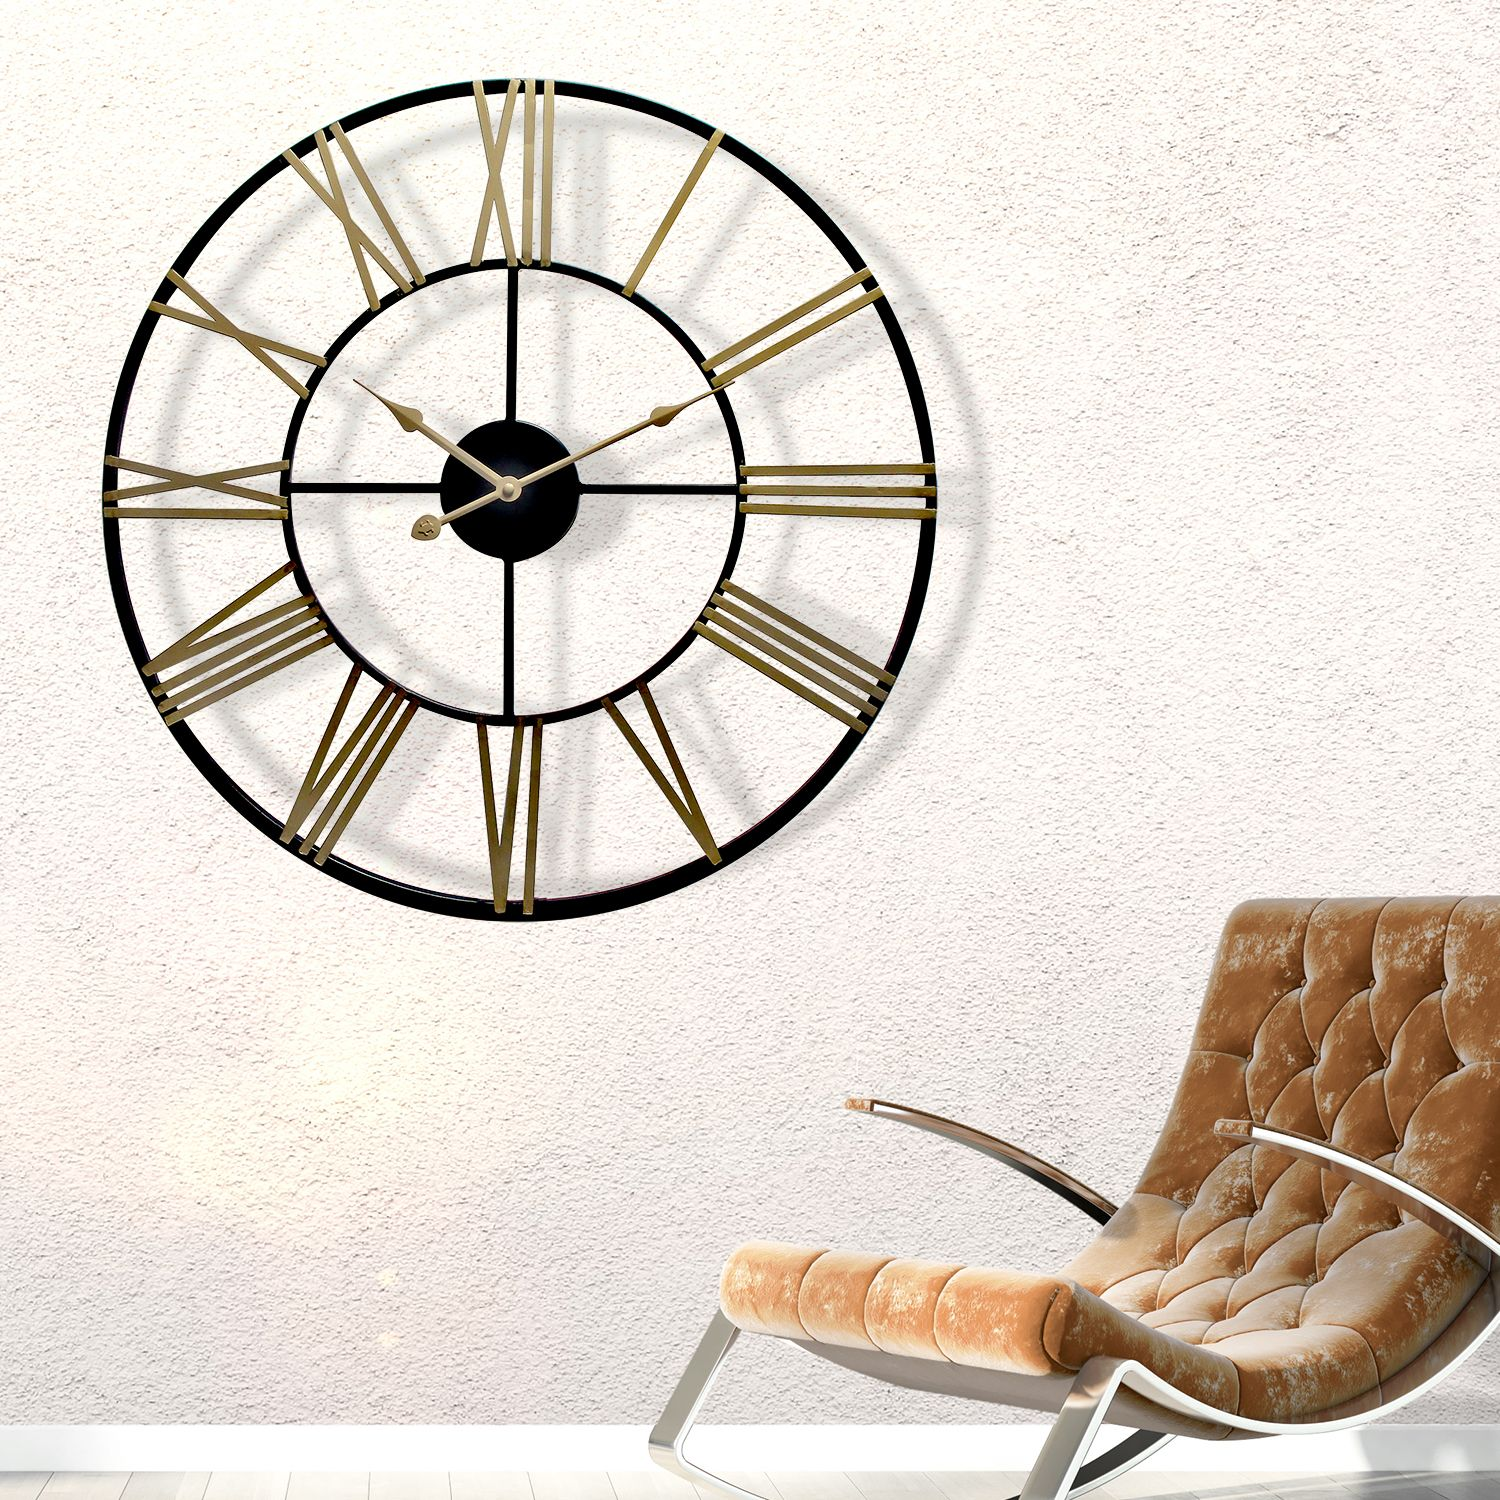 WC2129 - Rustic Industrial Slim Black and Gold Iron Wall Clock 73cm